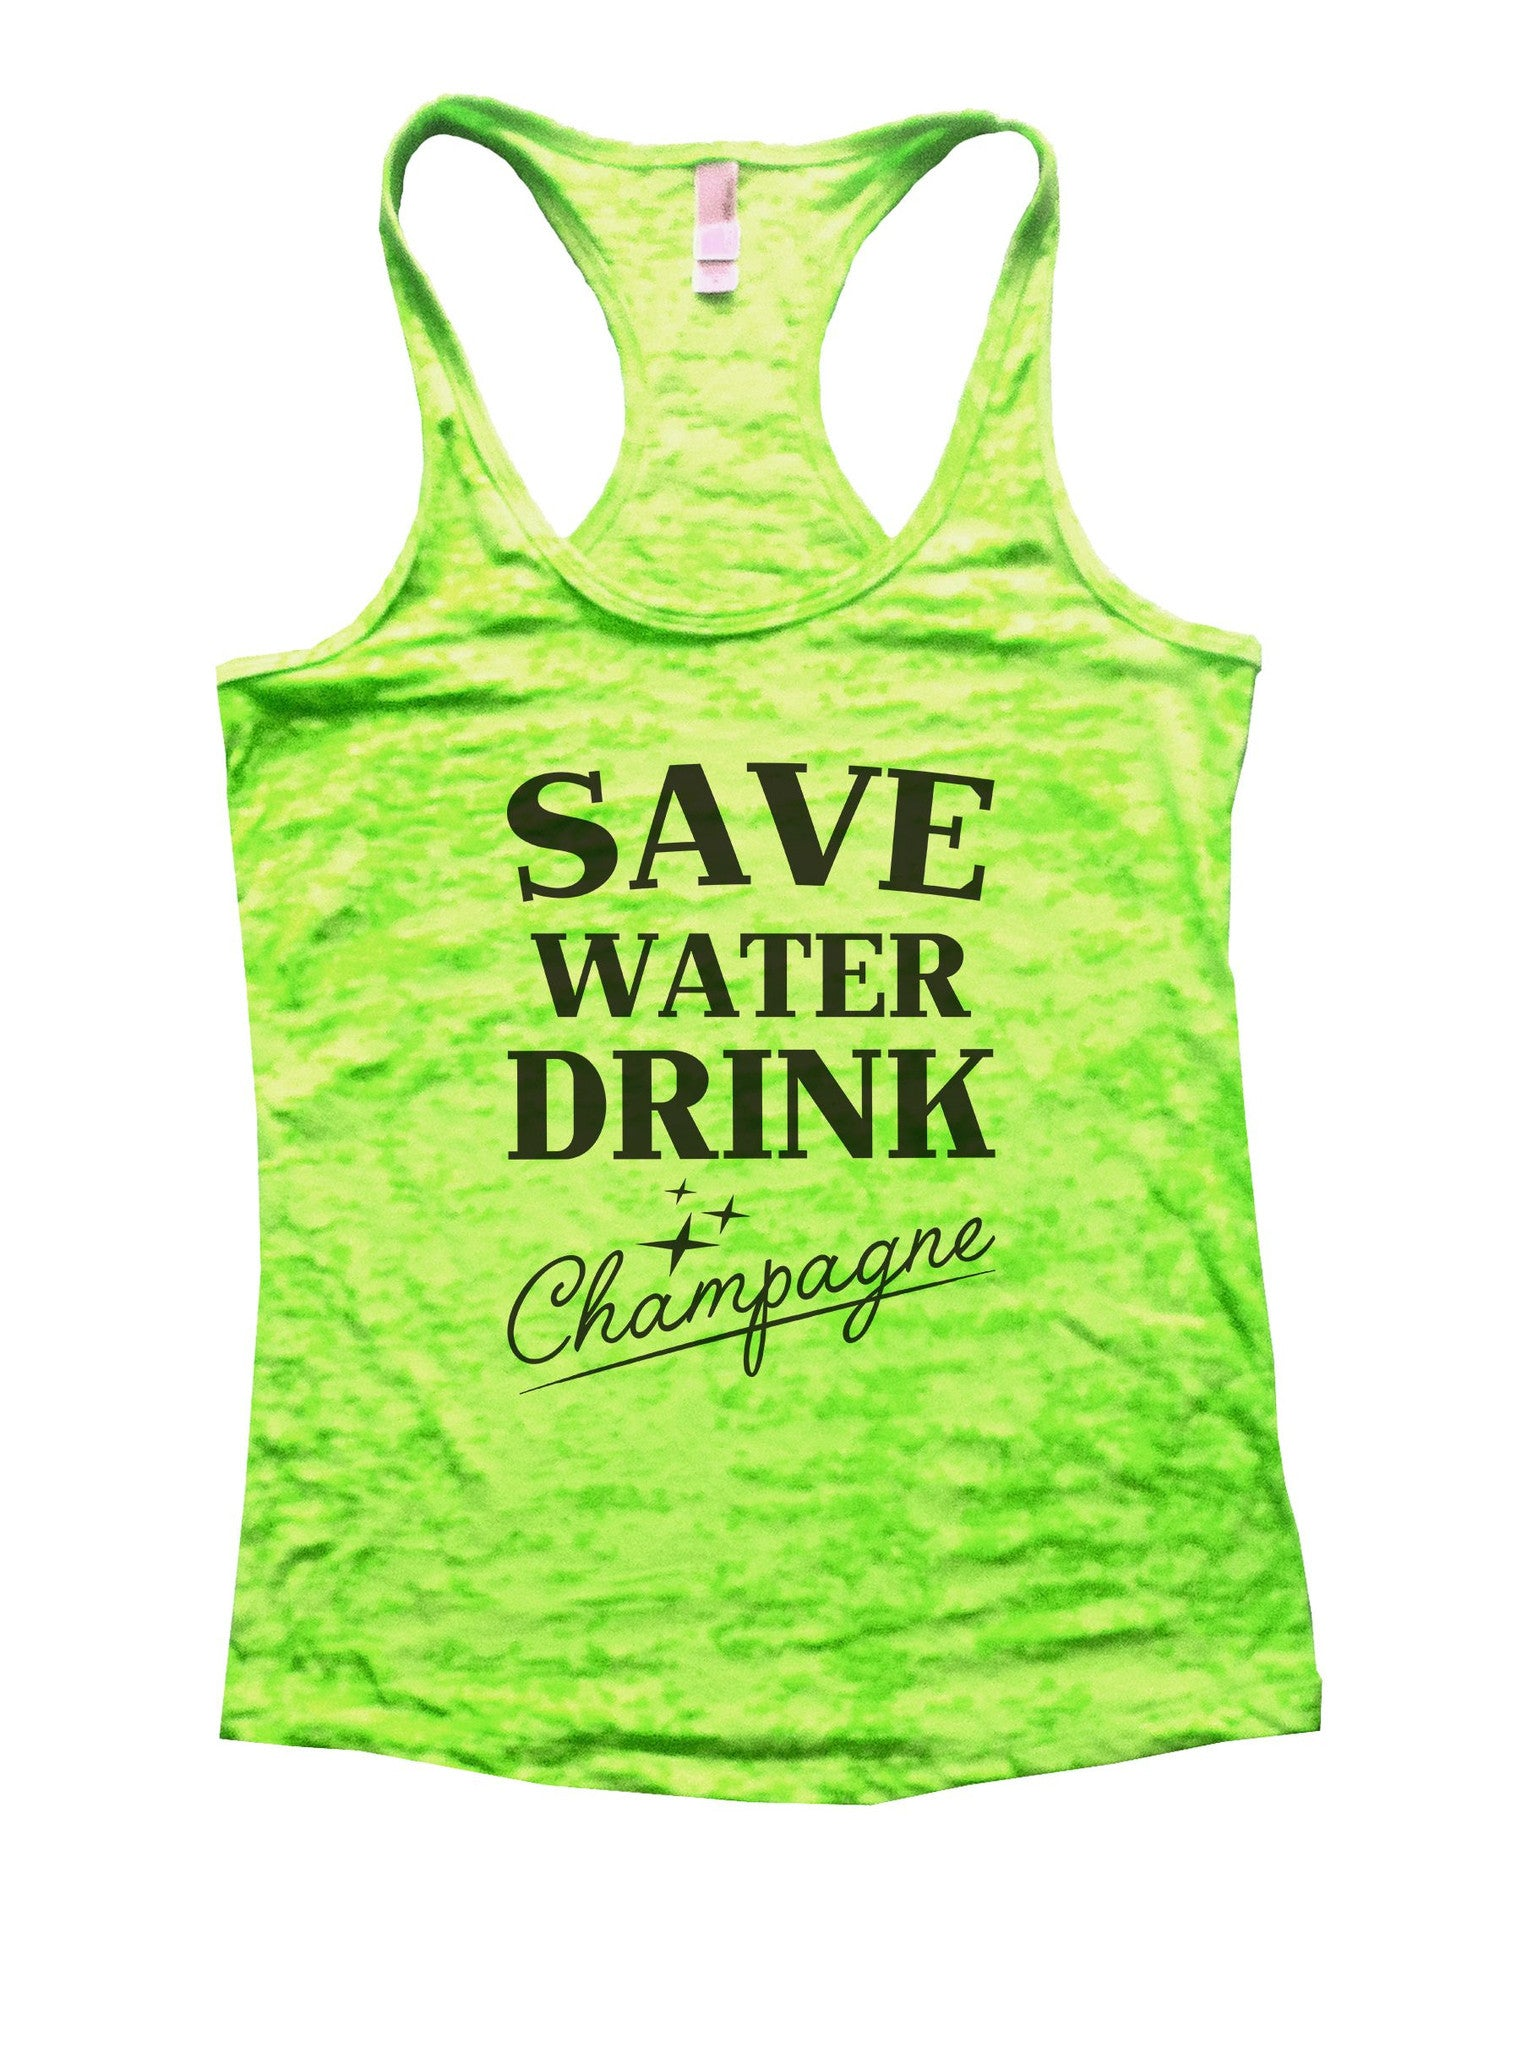 Save Water Dring Champagne Burnout Tank Top By BurnoutTankTops.com - 1009 - Funny Shirts Tank Tops Burnouts and Triblends  - 1